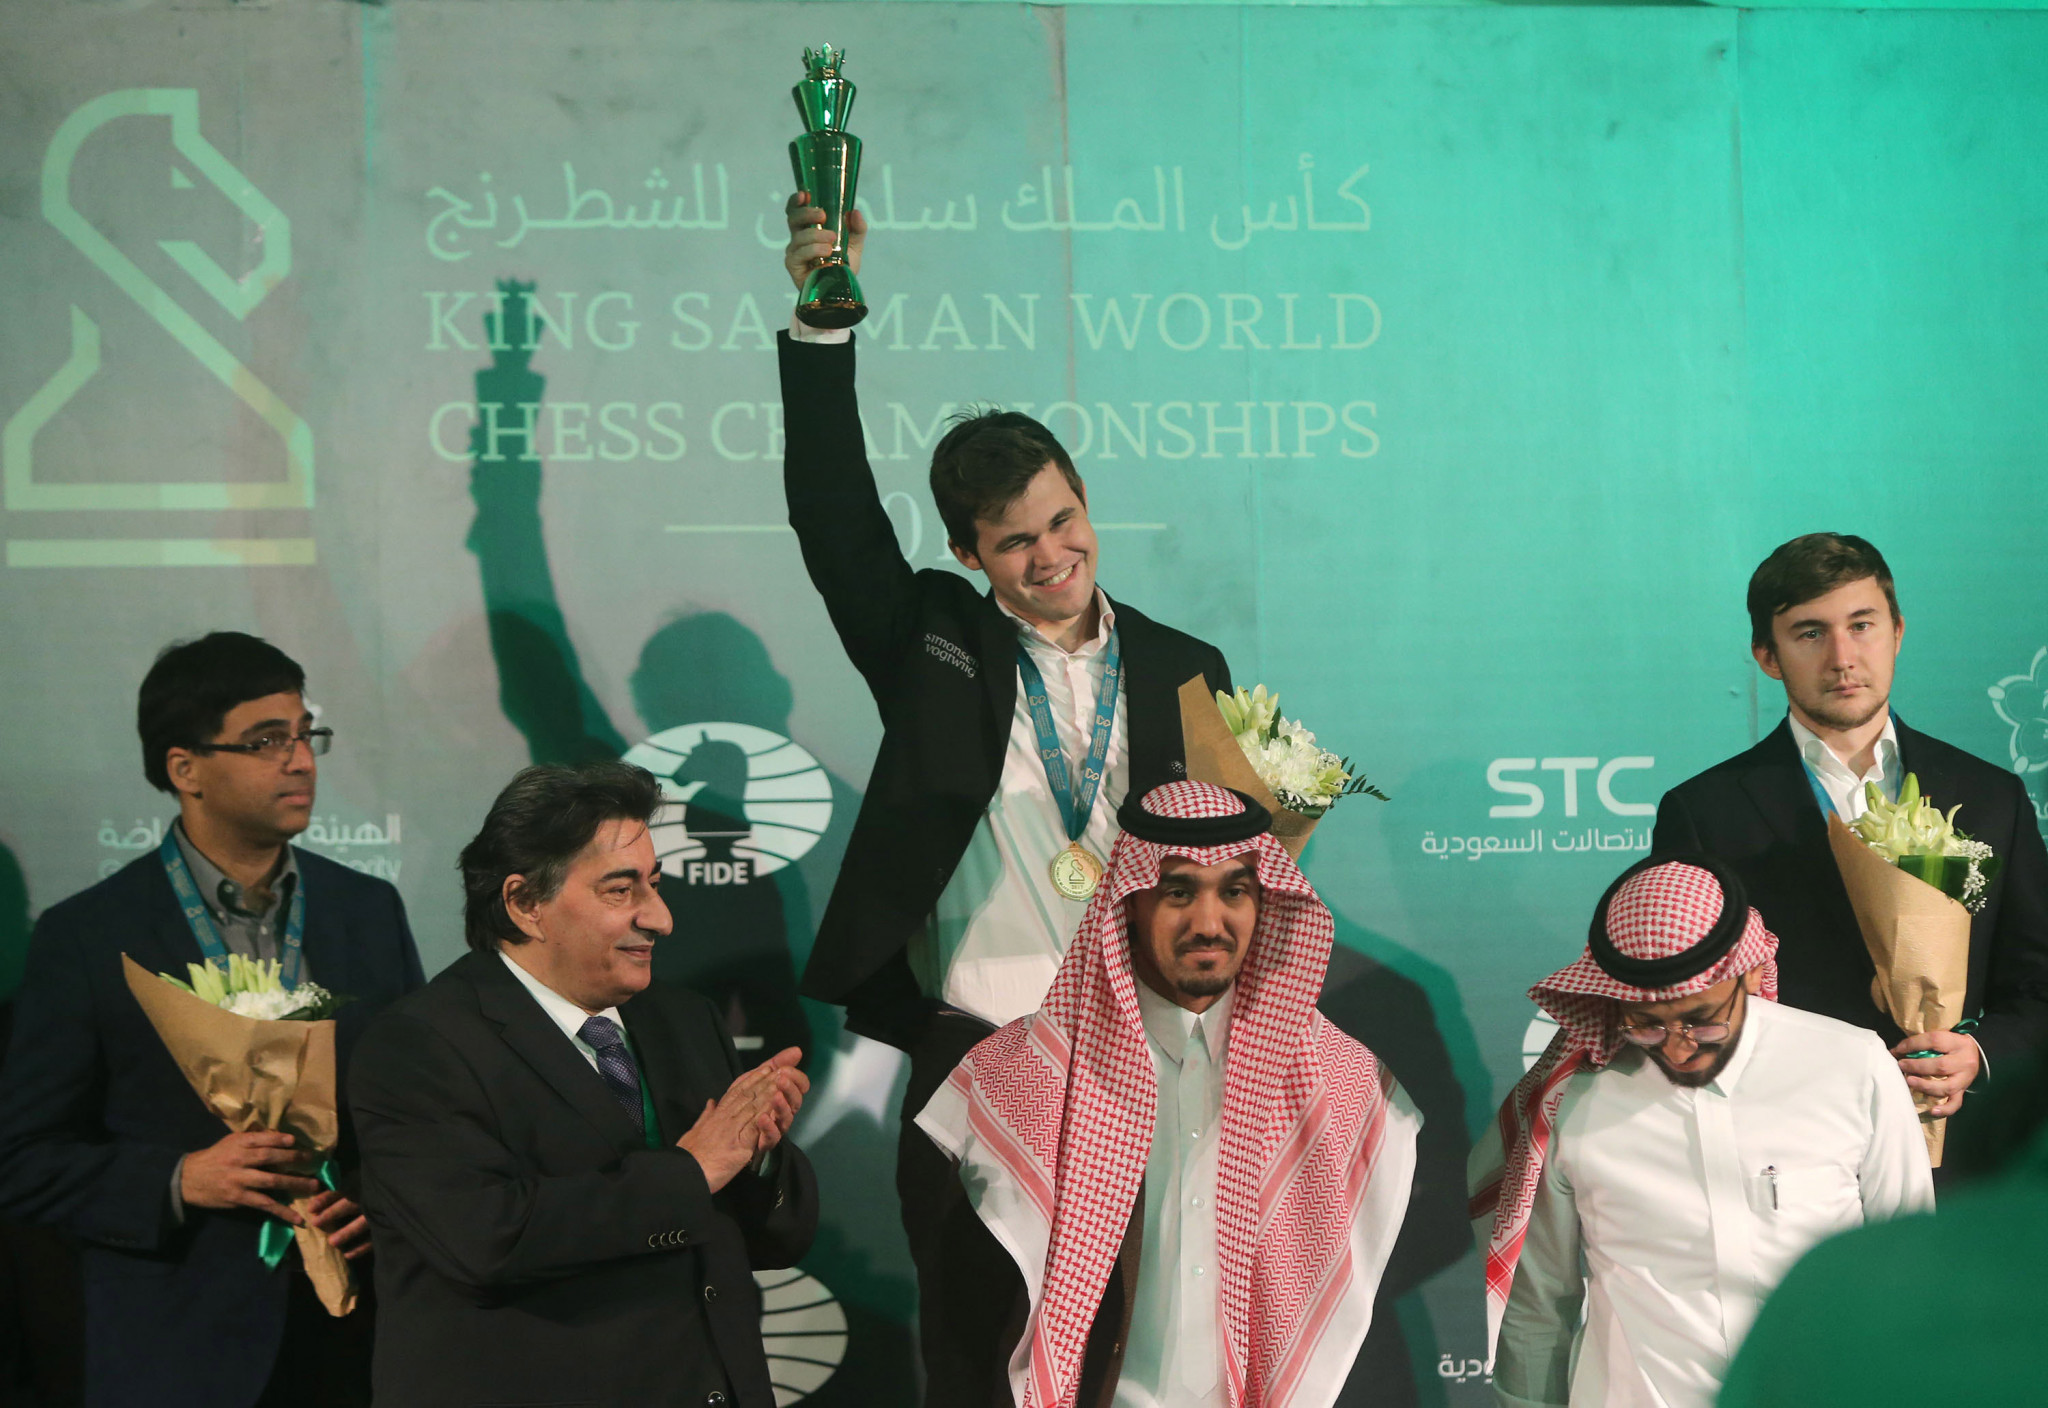 Magnus Carlsen, centre, won the men's event at The King Salman World Blitz Chess Championship ©Getty Images